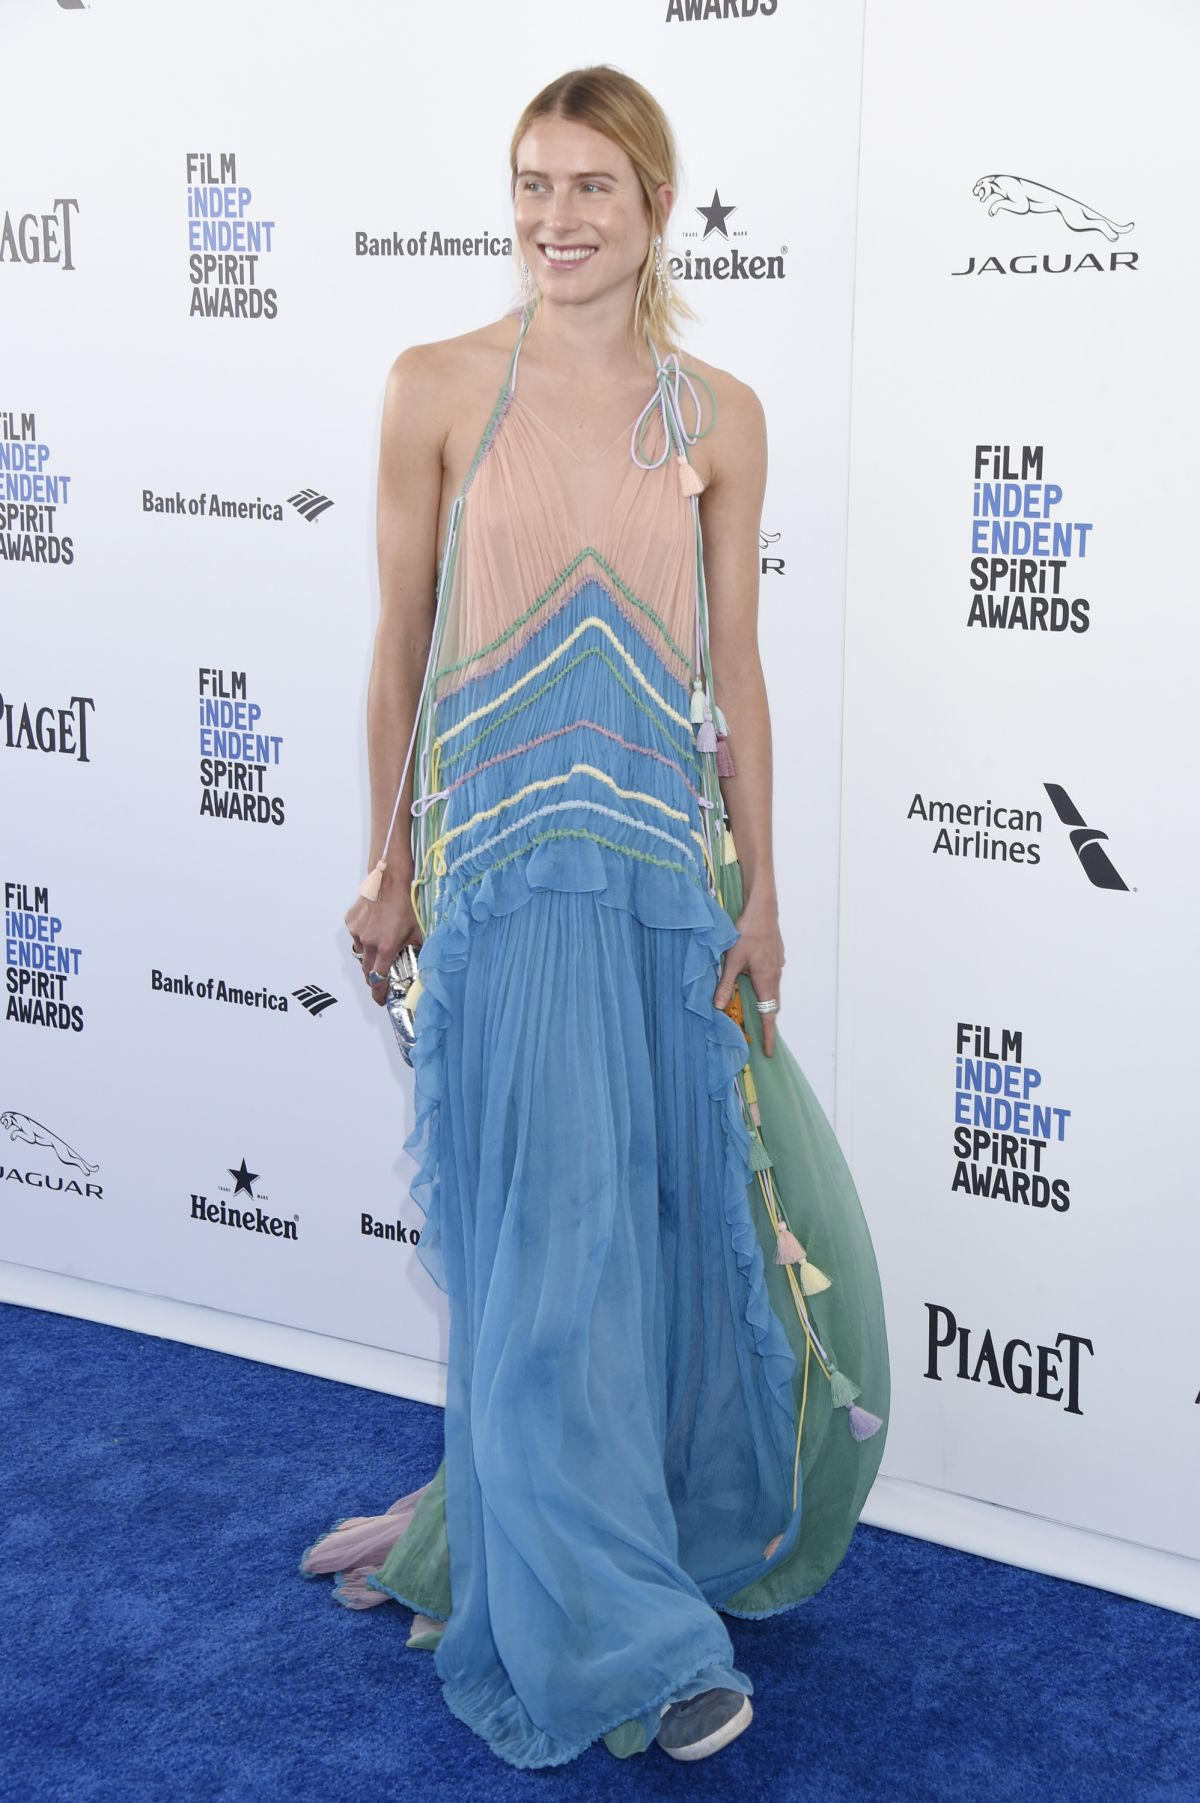 DREE HEMINGWAY at Film Independent Spirit Awards in Santa Monica 02/27/2016